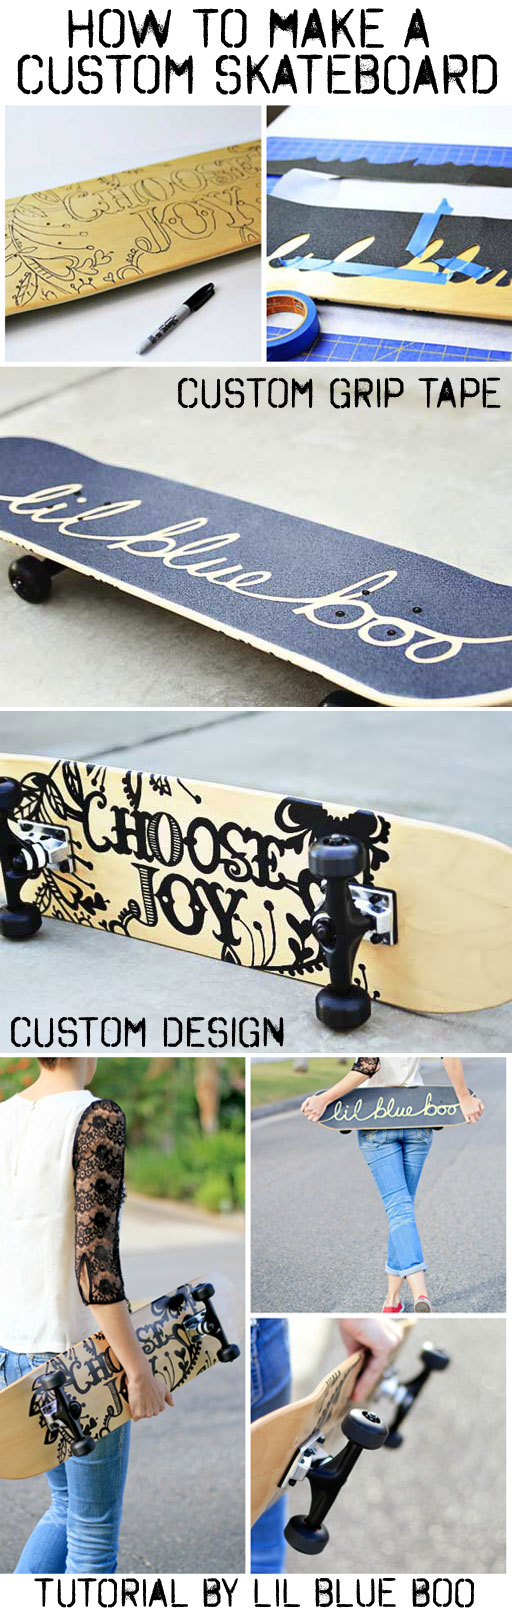 How to make and paint a custom skateboard (custom grip tape to custom design) Great birthday party idea, Christmas gift, etc. via lilblueboo.com #skateboard #diy #griptape #custom #tutorial #gifts #handmadegifts